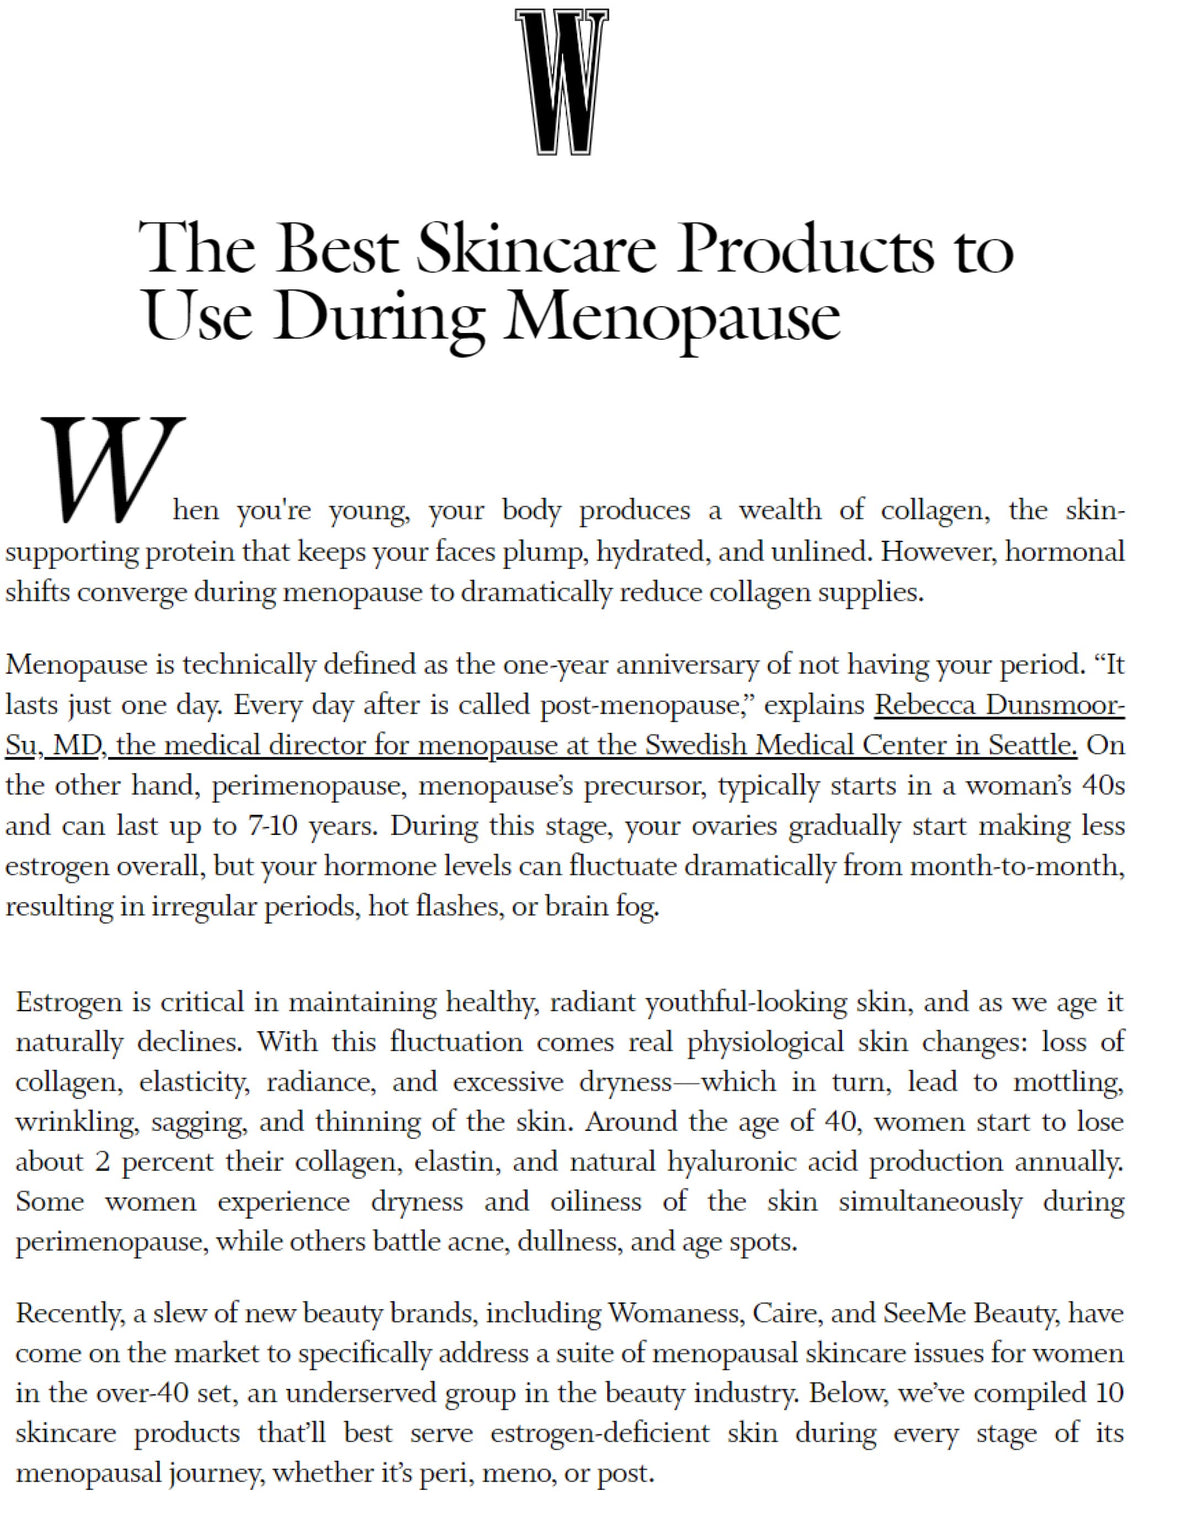 W Magazine: The Best Skincare Products to Use During Menopause